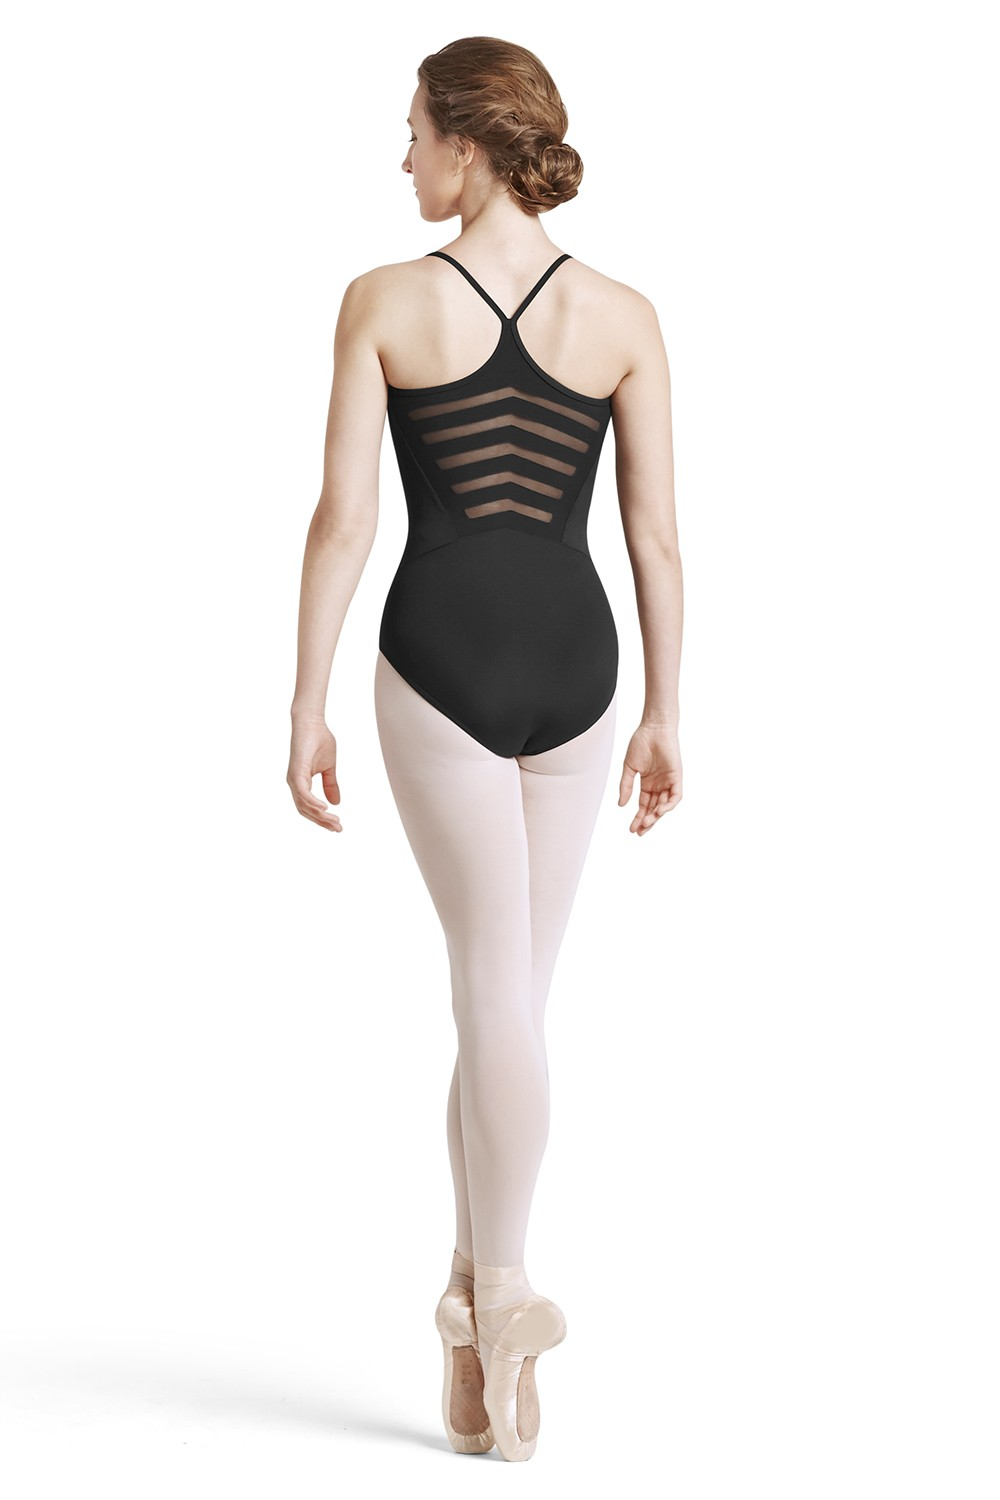 Ekani Womens Camisole Leotards